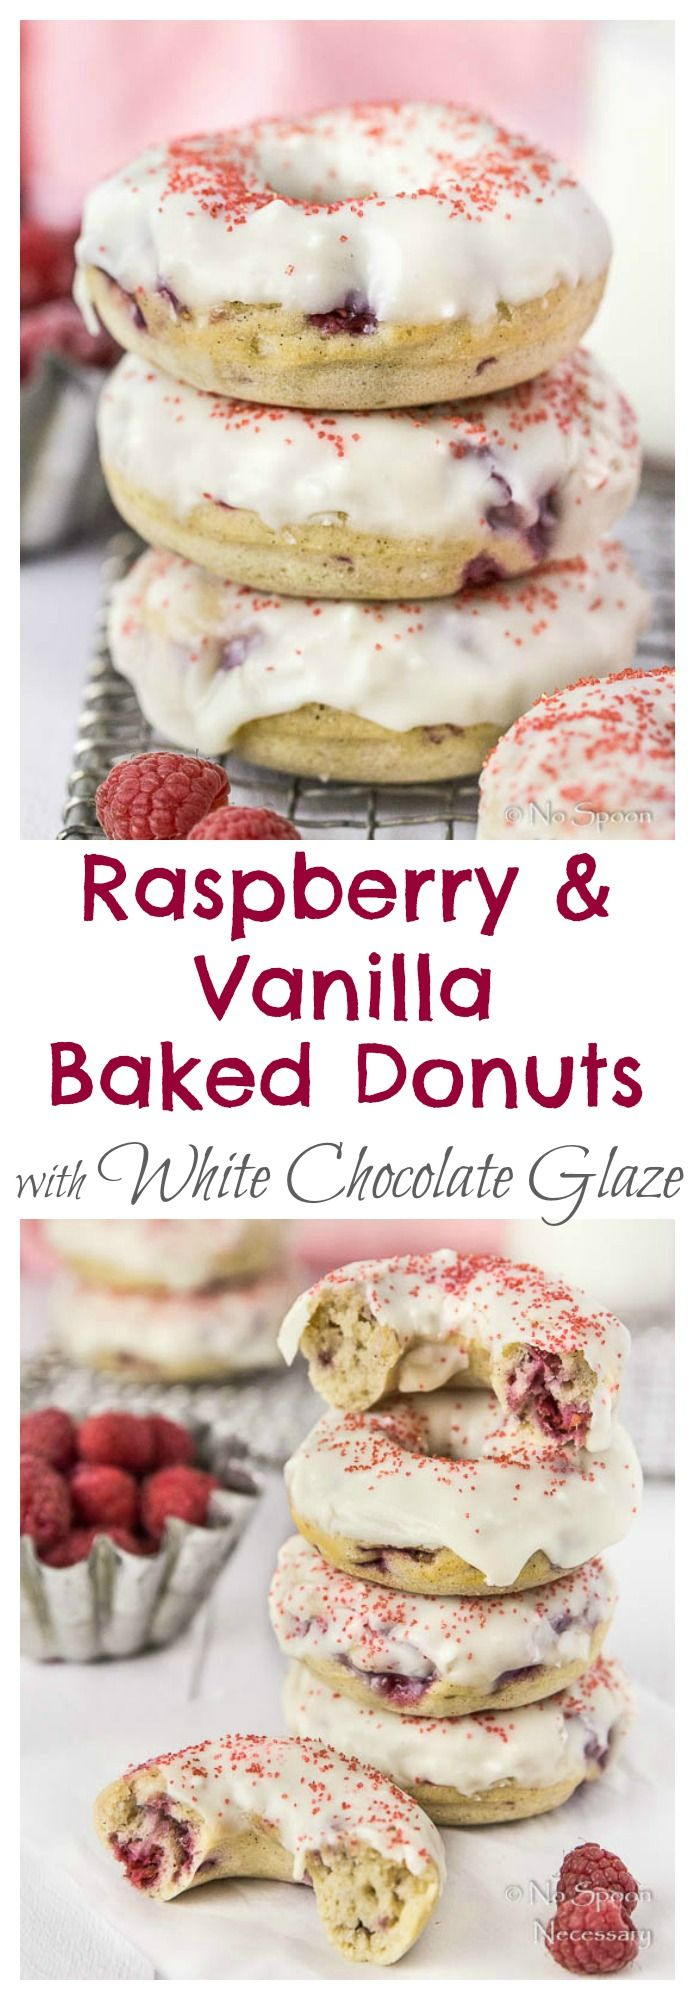 Raspberry & Vanilla Baked Donuts with White Chocolate Glaze- long pin1